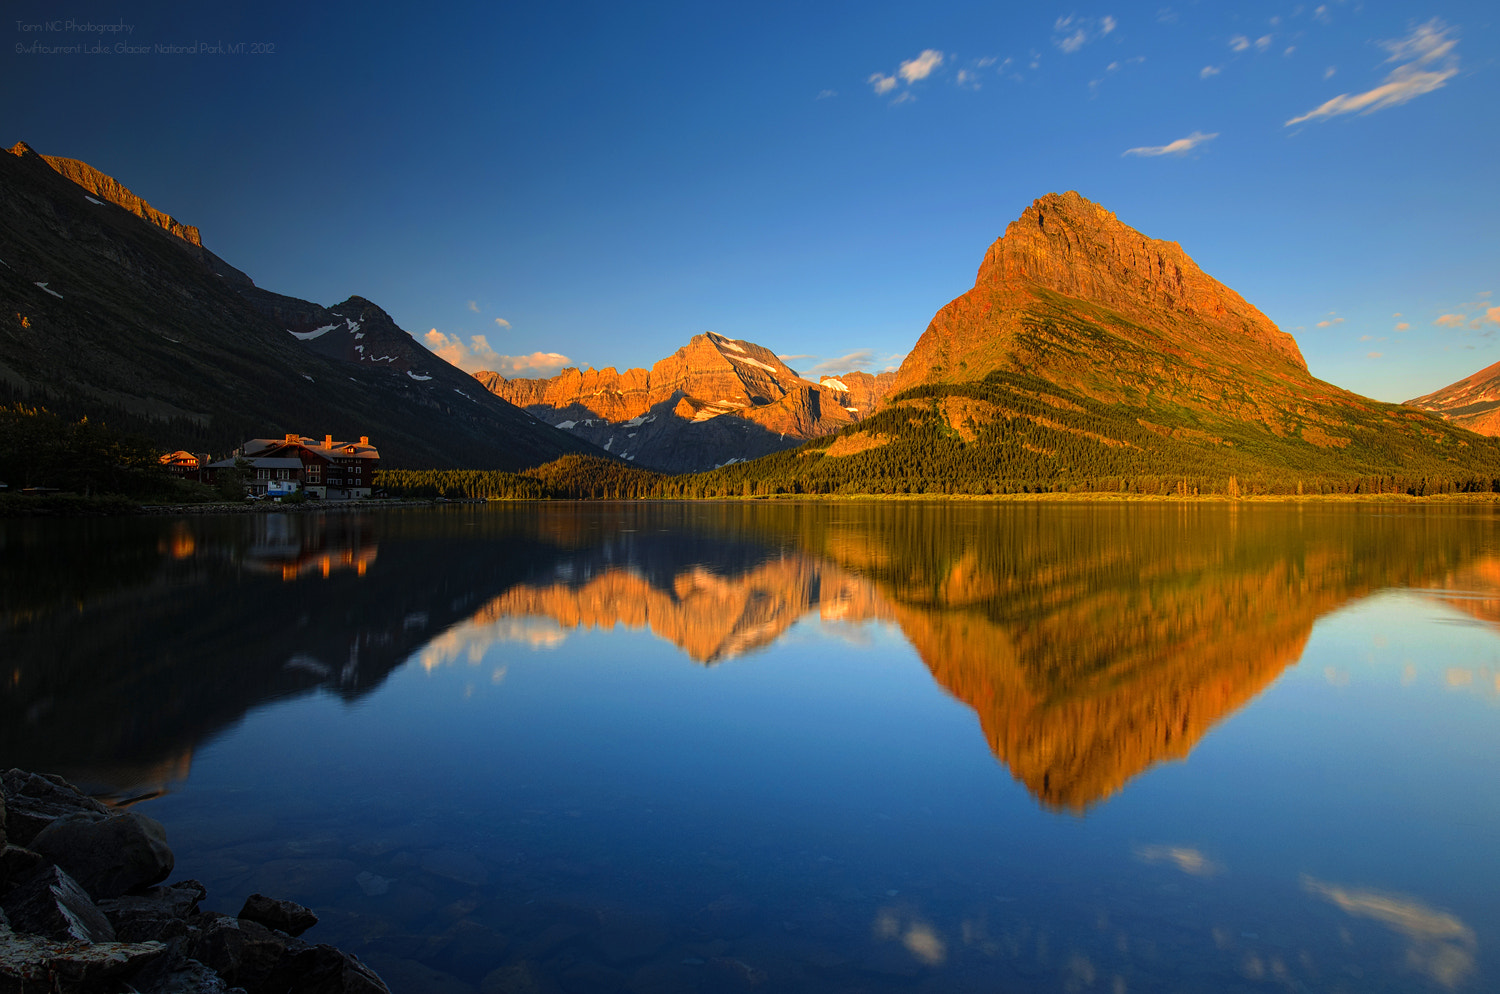 Photograph Swiftcurrent Reflection by Noppawat Charoensinphon on 500px